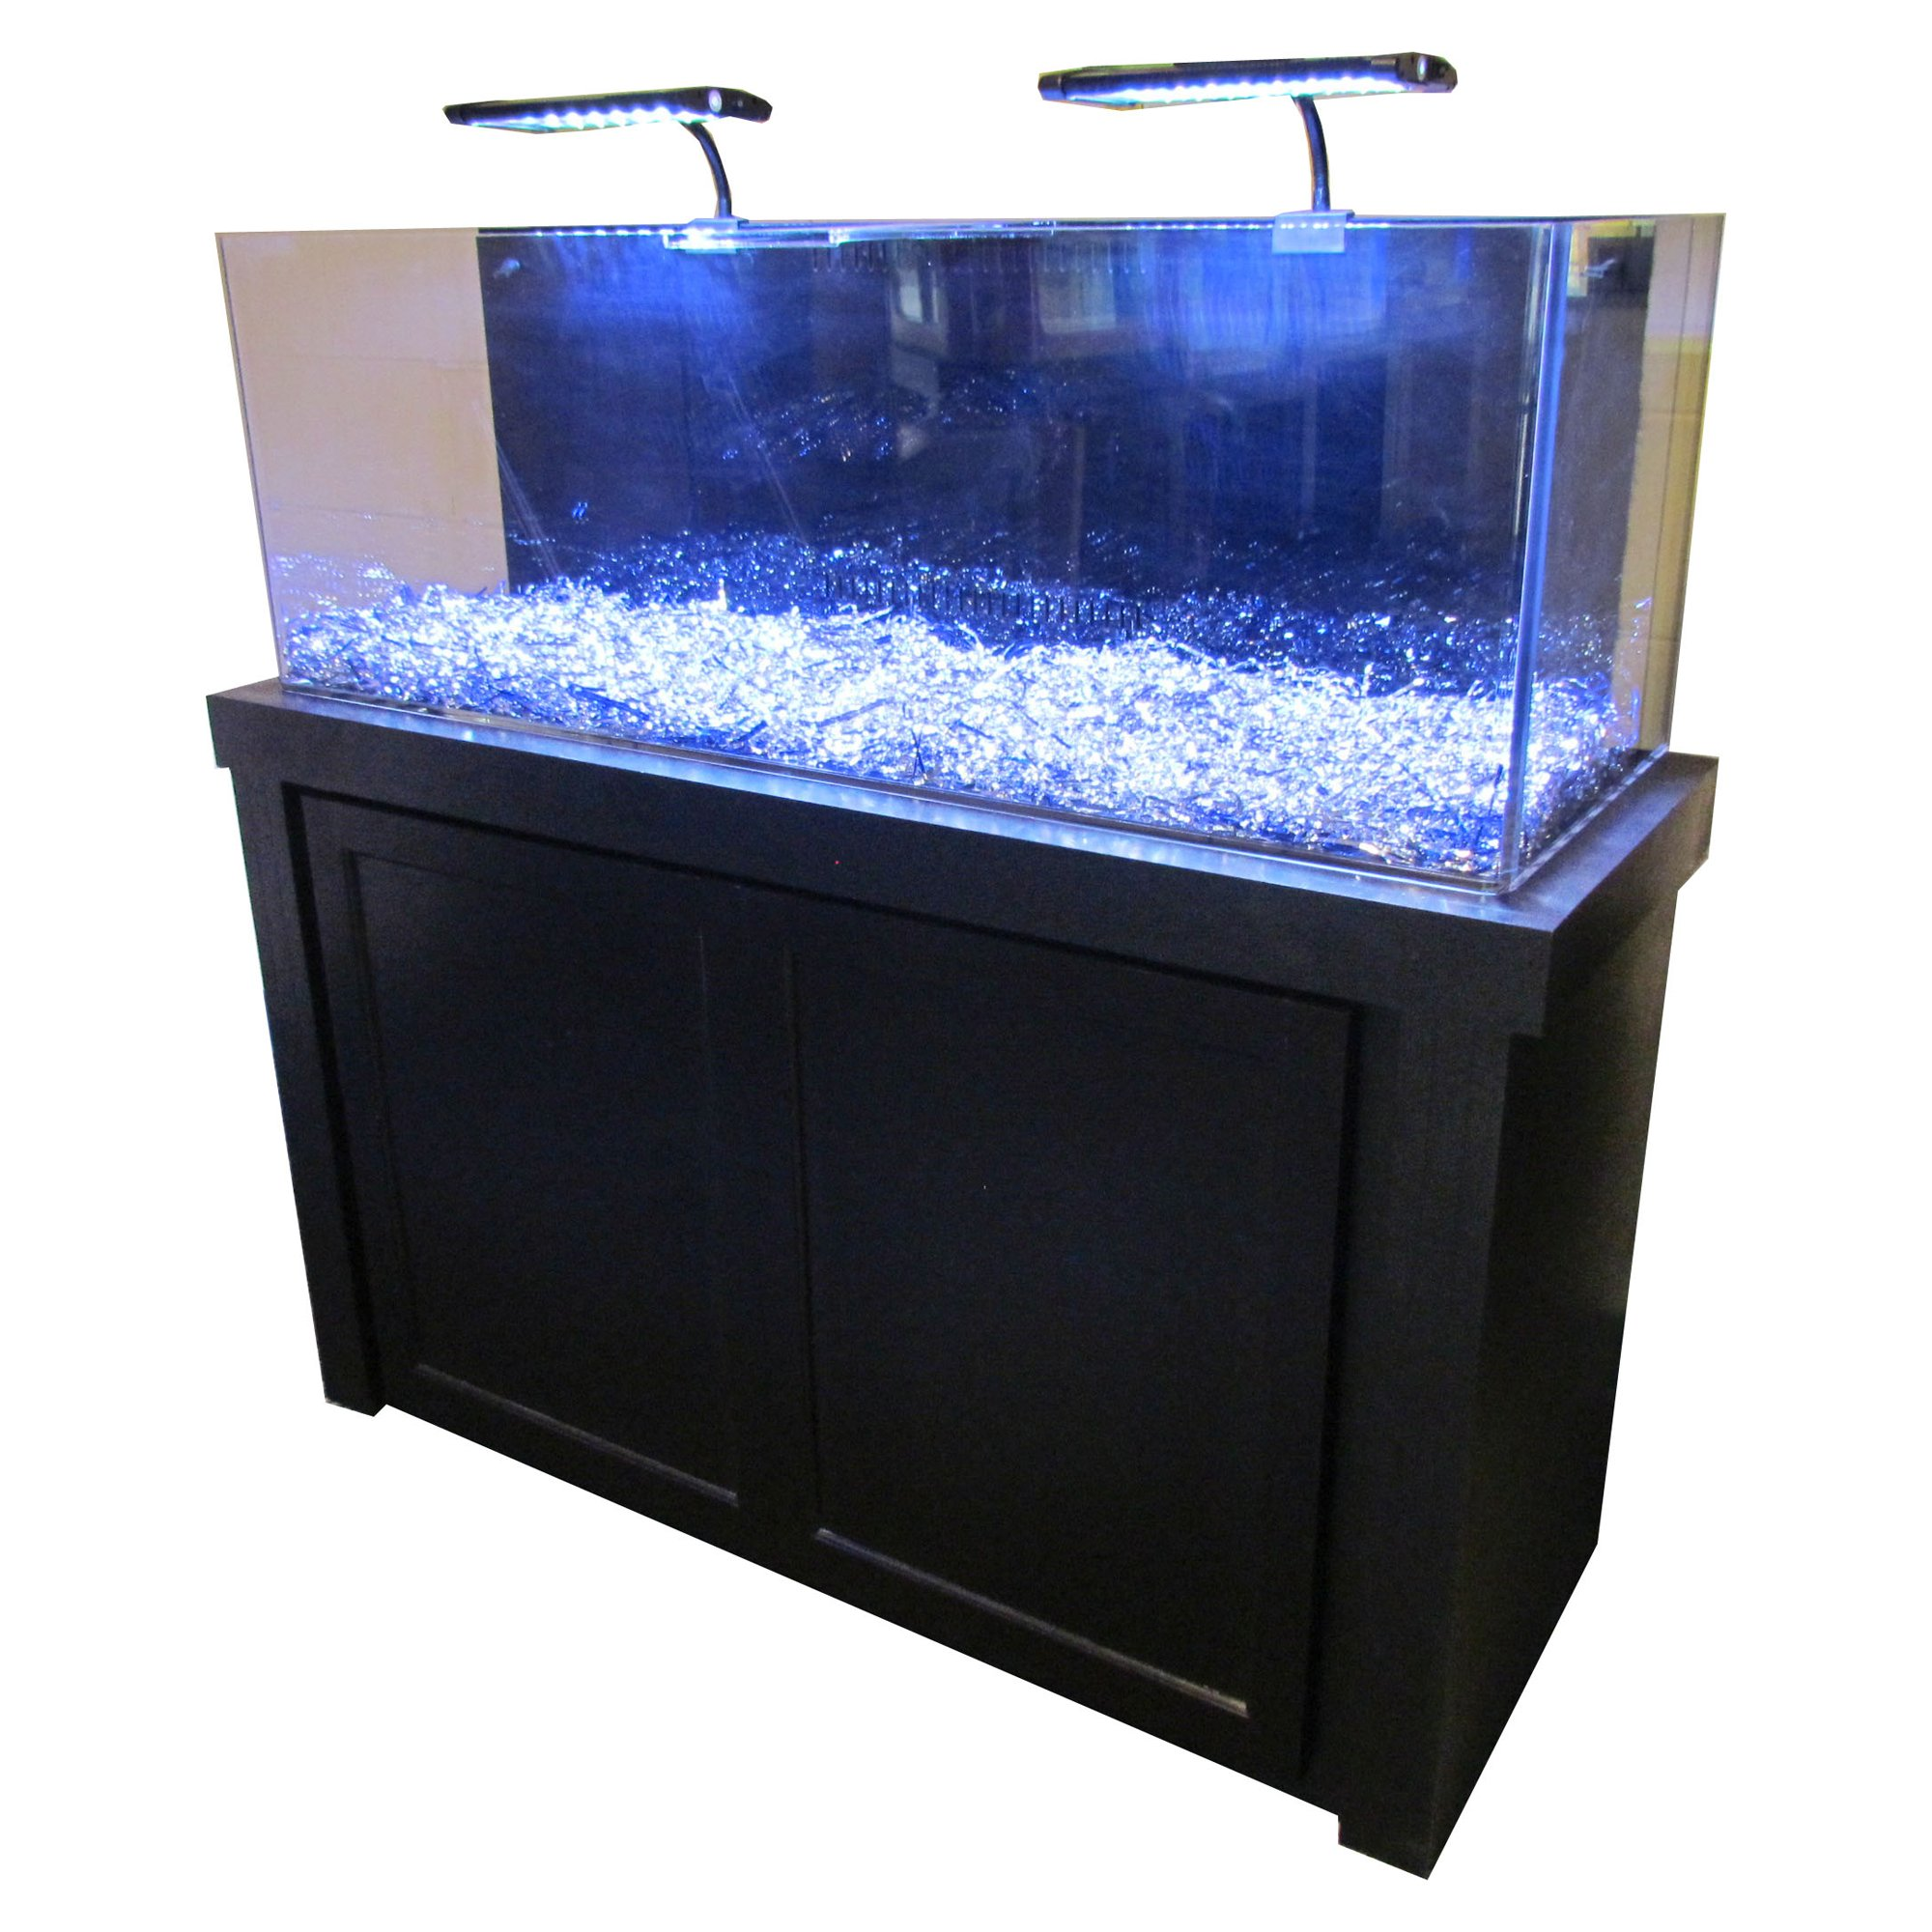 Small aquarium fish tanks - 50 Gallon Black Fusion Series Cabinet Tank Combo